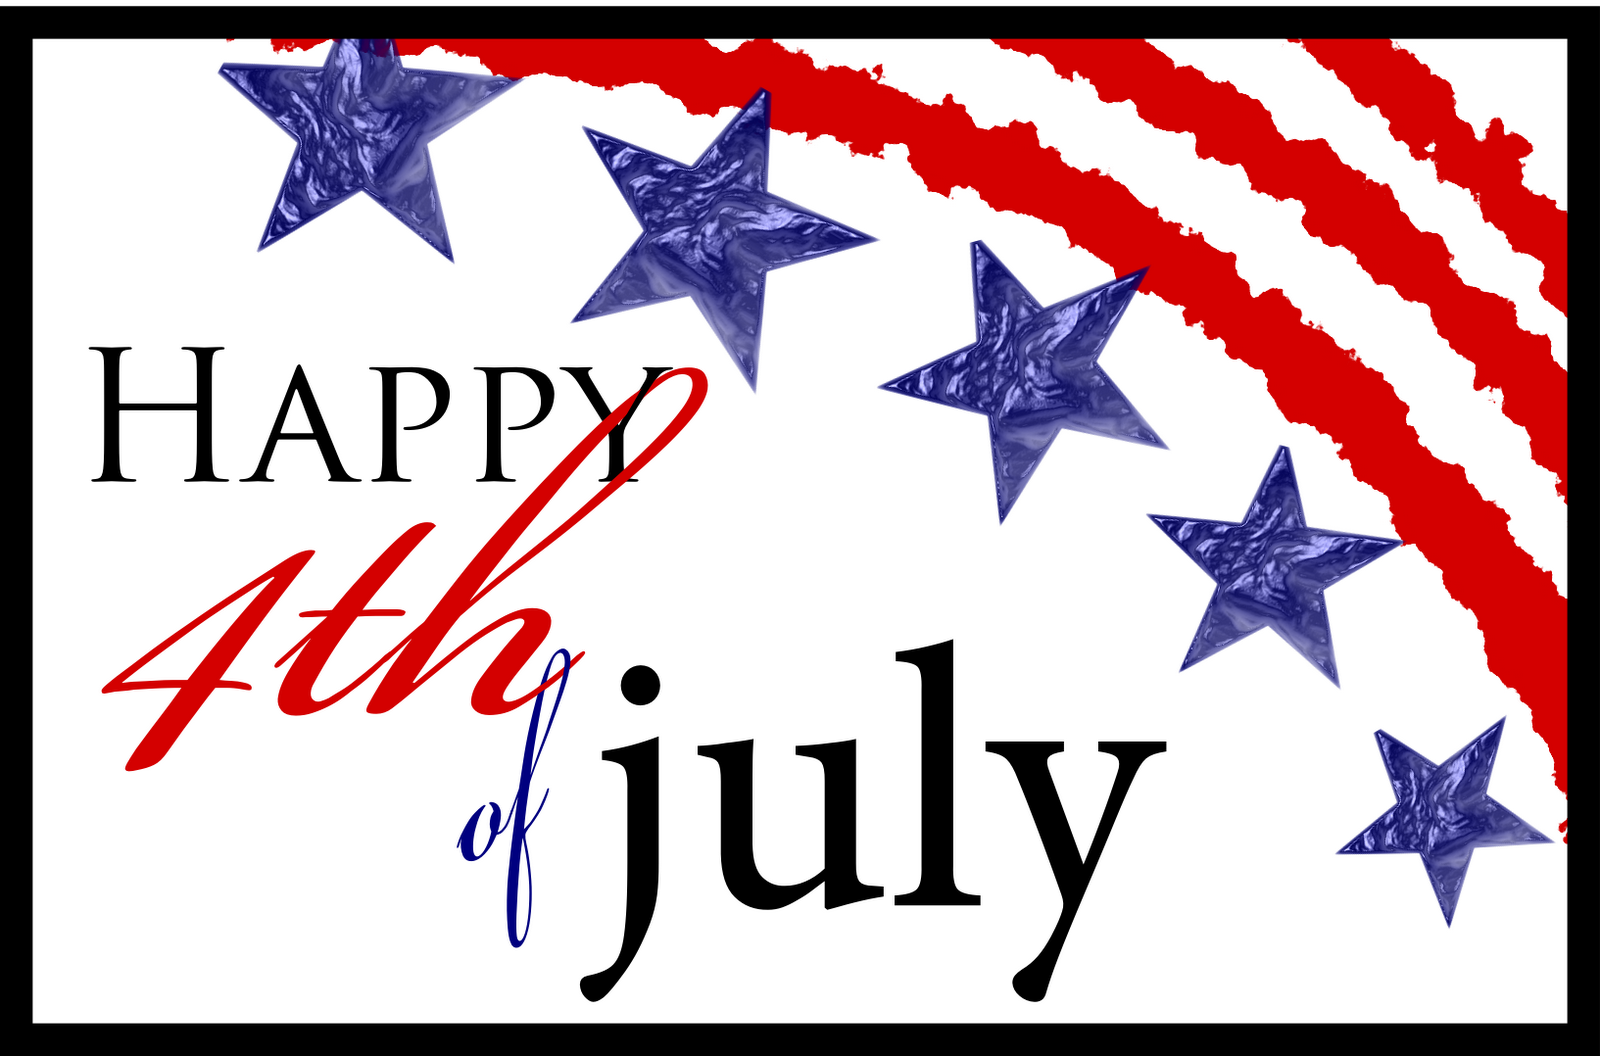 ... 4th Of July Pics Free | Free Downloa-... 4th Of July Pics Free | Free Download Clip Art | Free Clip Art ..-5